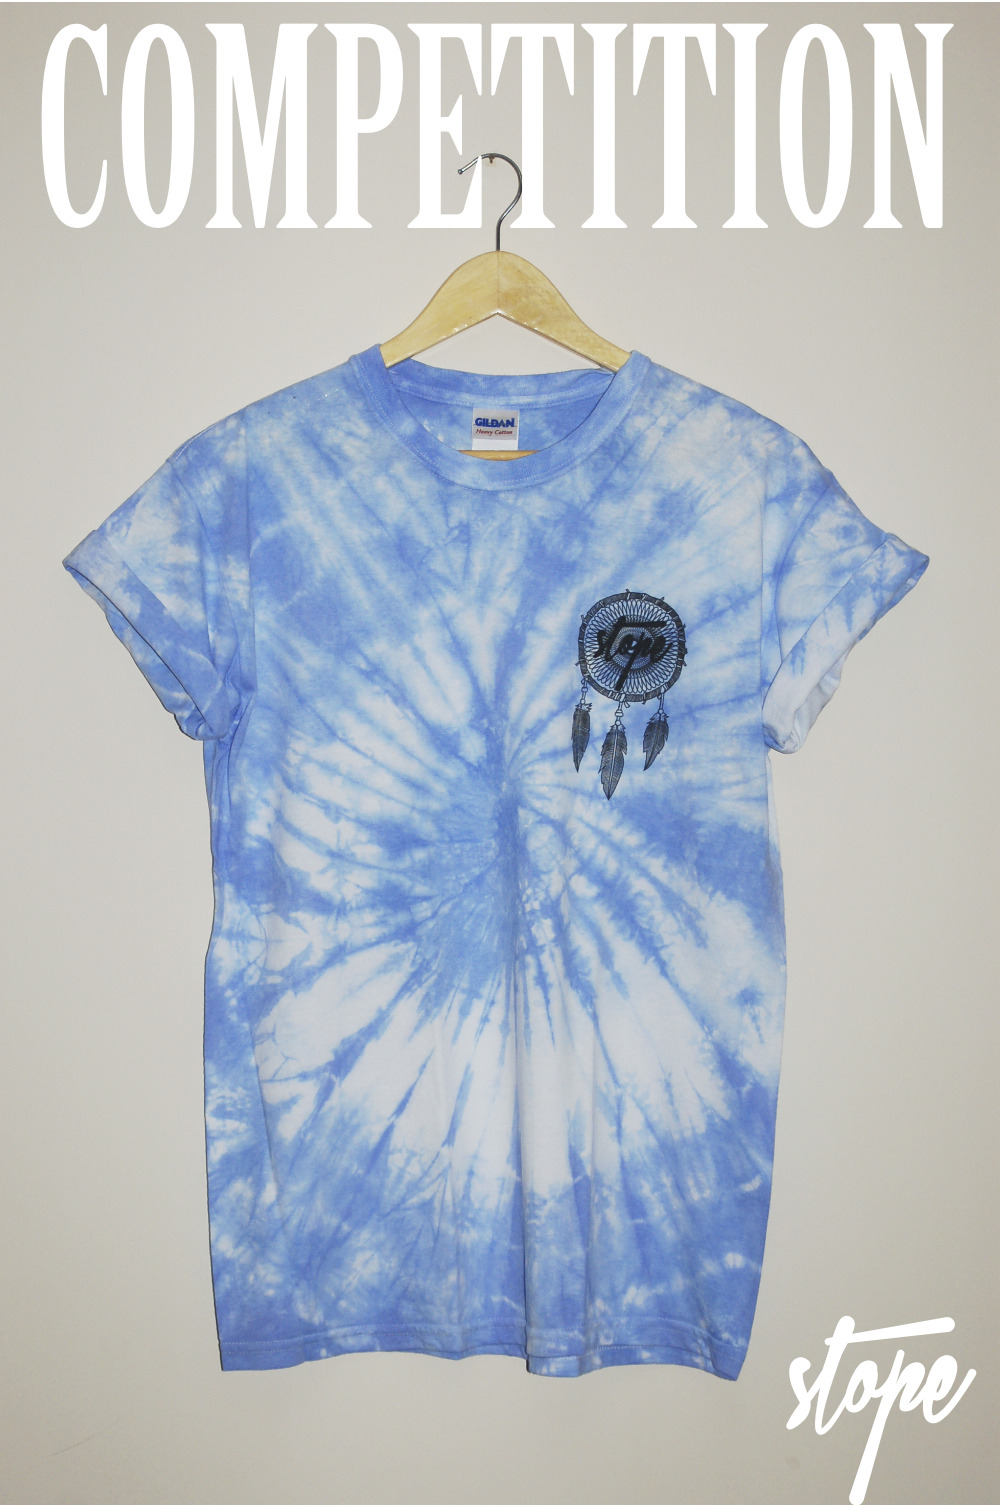 stopeclothing:  COMPETITION For a chance to win one of our Blue Dreamcatcher tie-dyes in either small, medium or large simply follow: www.stopeclothing.tumblr.com and like: www.facebook.com/stopeclothing and reblog this picture! Competition ends on 1/7/2012 at 8PM. Good luck!